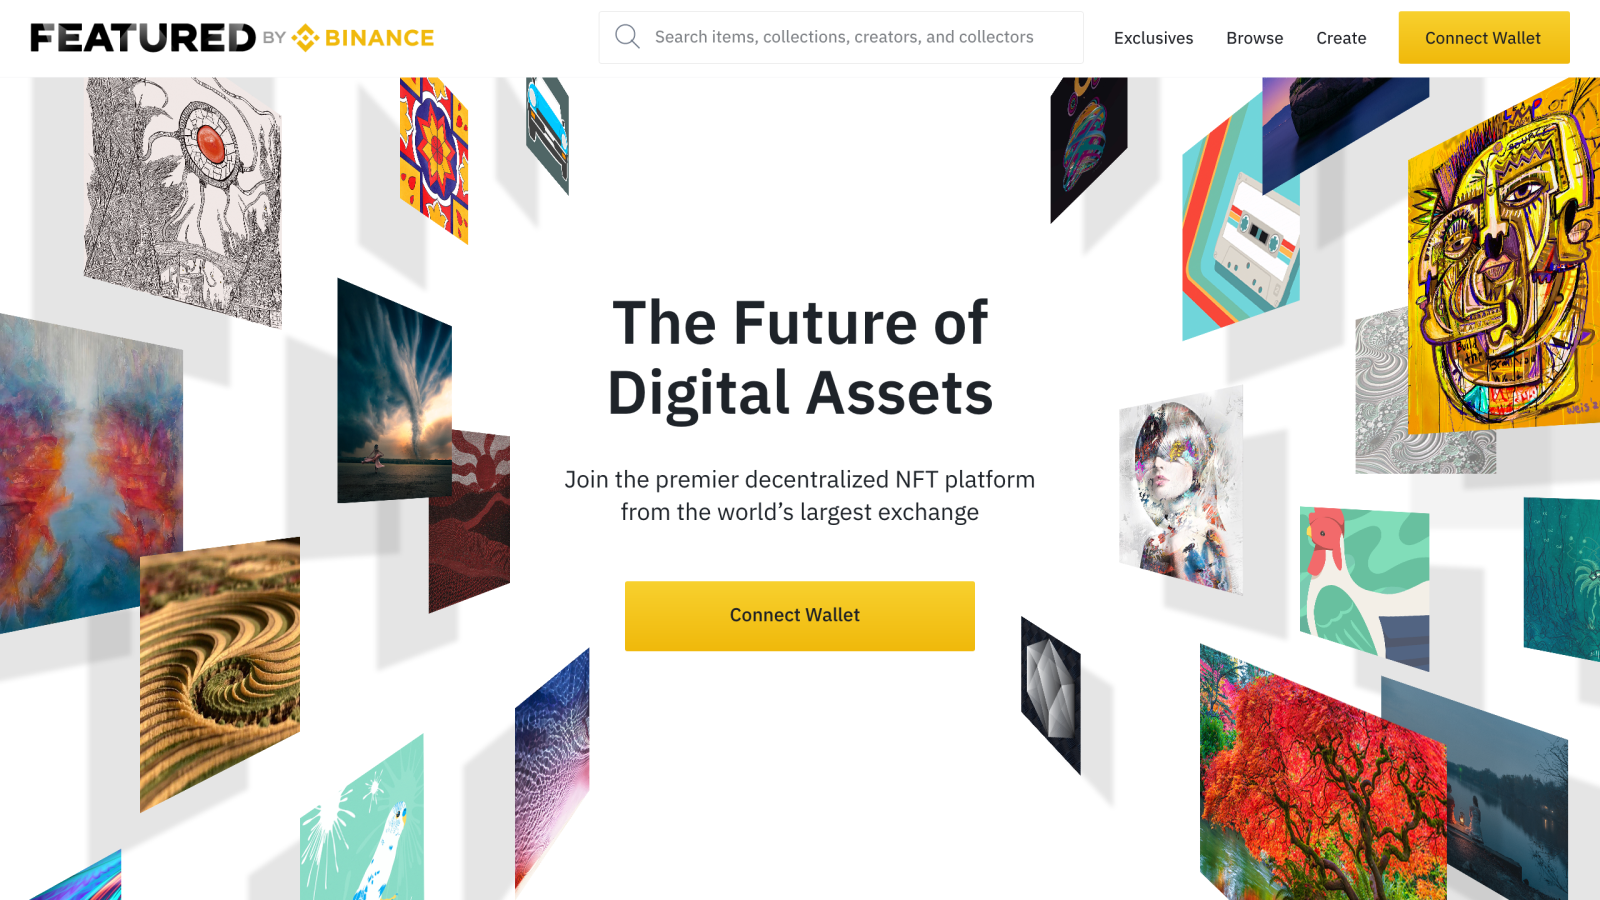 """Introducing """"Featured by Binance"""": A Decentralized NFT Platform From Binance Cryptocurrency Trading Signals, Strategies & Templates   DexStrats"""